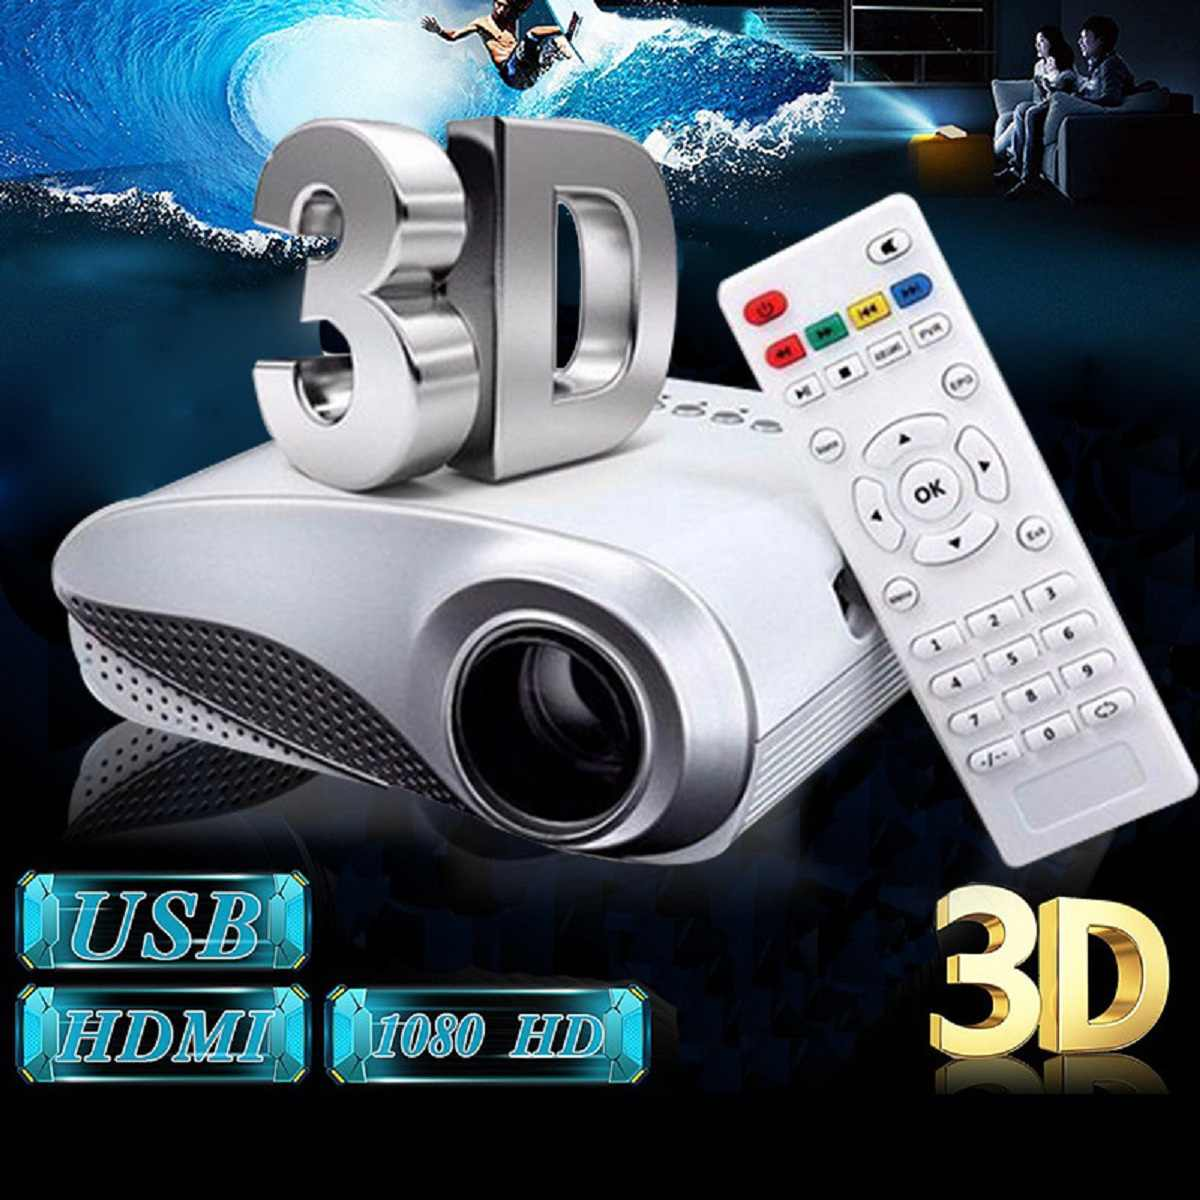 Baru Bening Mini Portabel 1080P 3D HD LED Proyektor Multimedia Home Theater USB Vga HDMI TV Sistem Home Theater